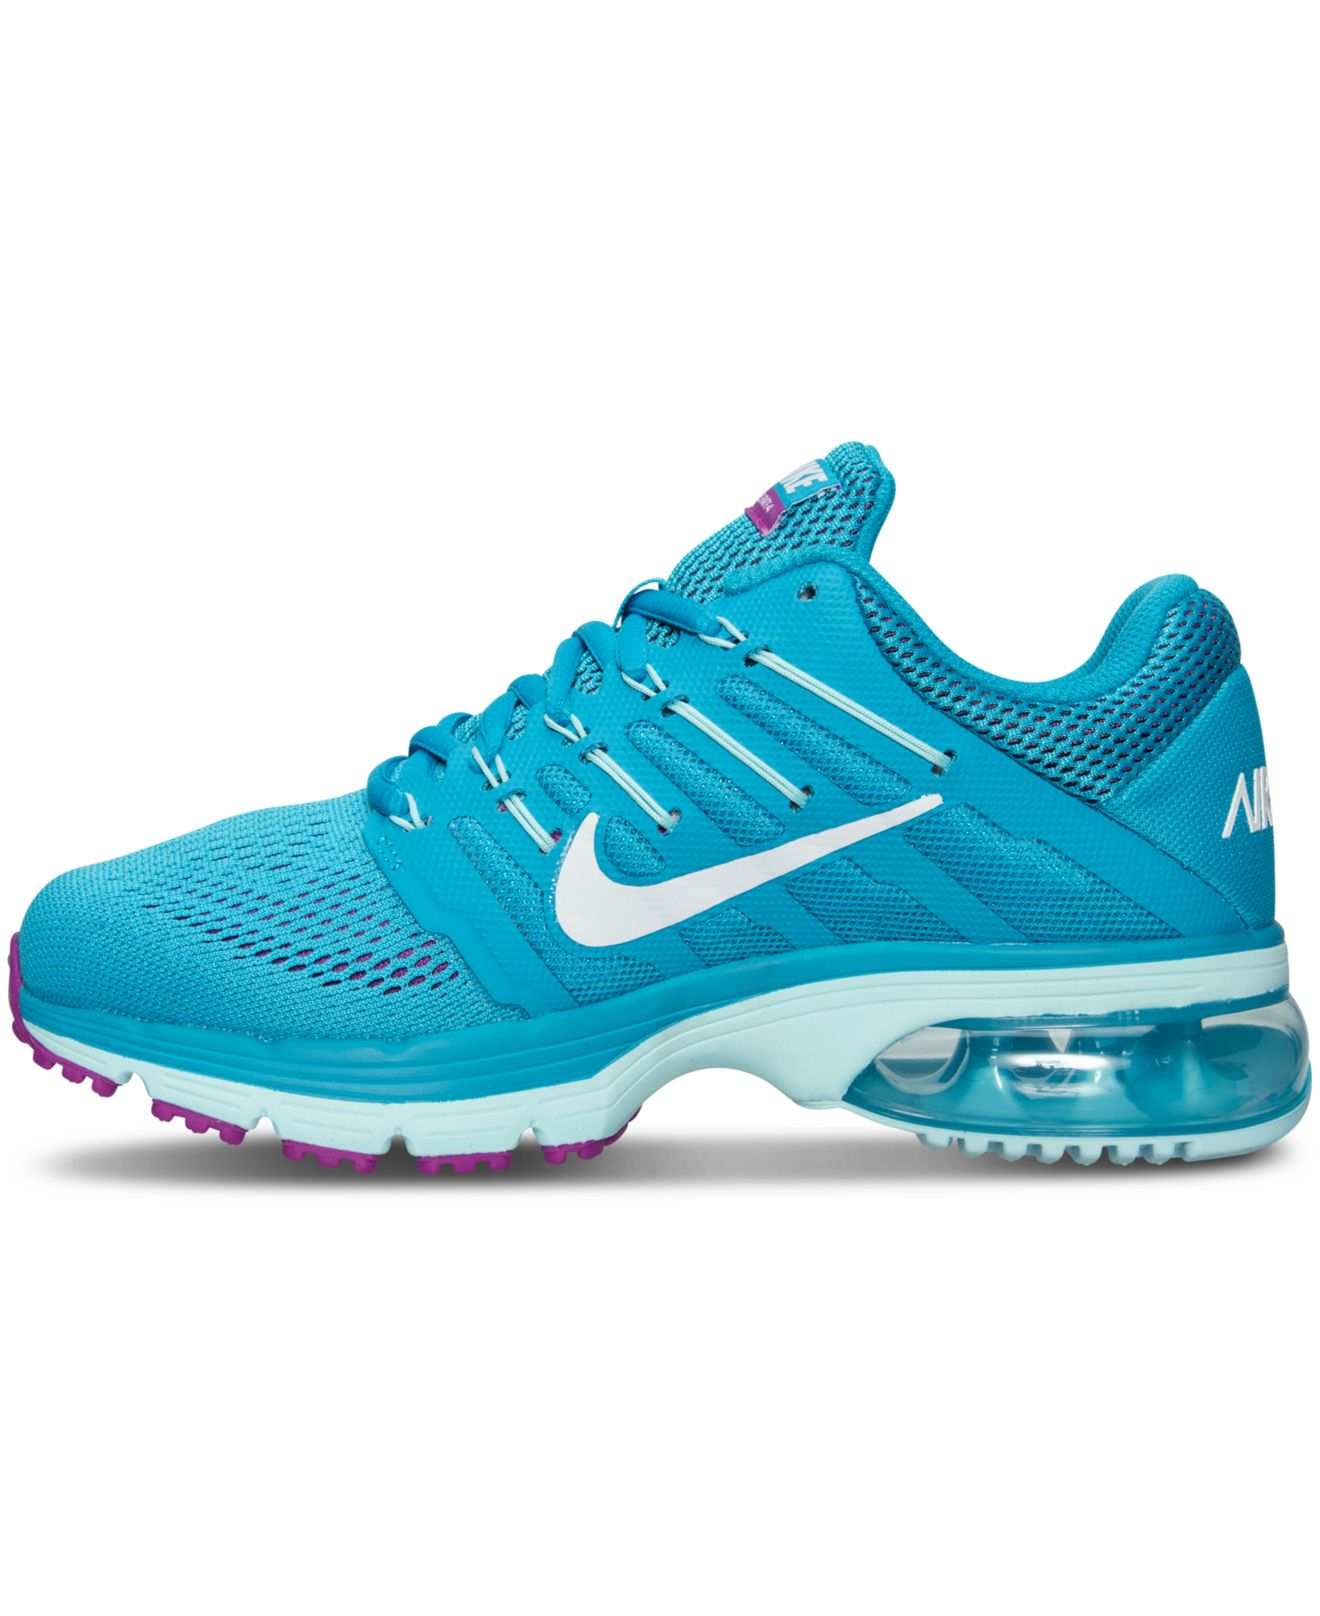 Lyst - Nike Women s Air Max Excellerate 4 Running Sneakers From ... 844408aad0